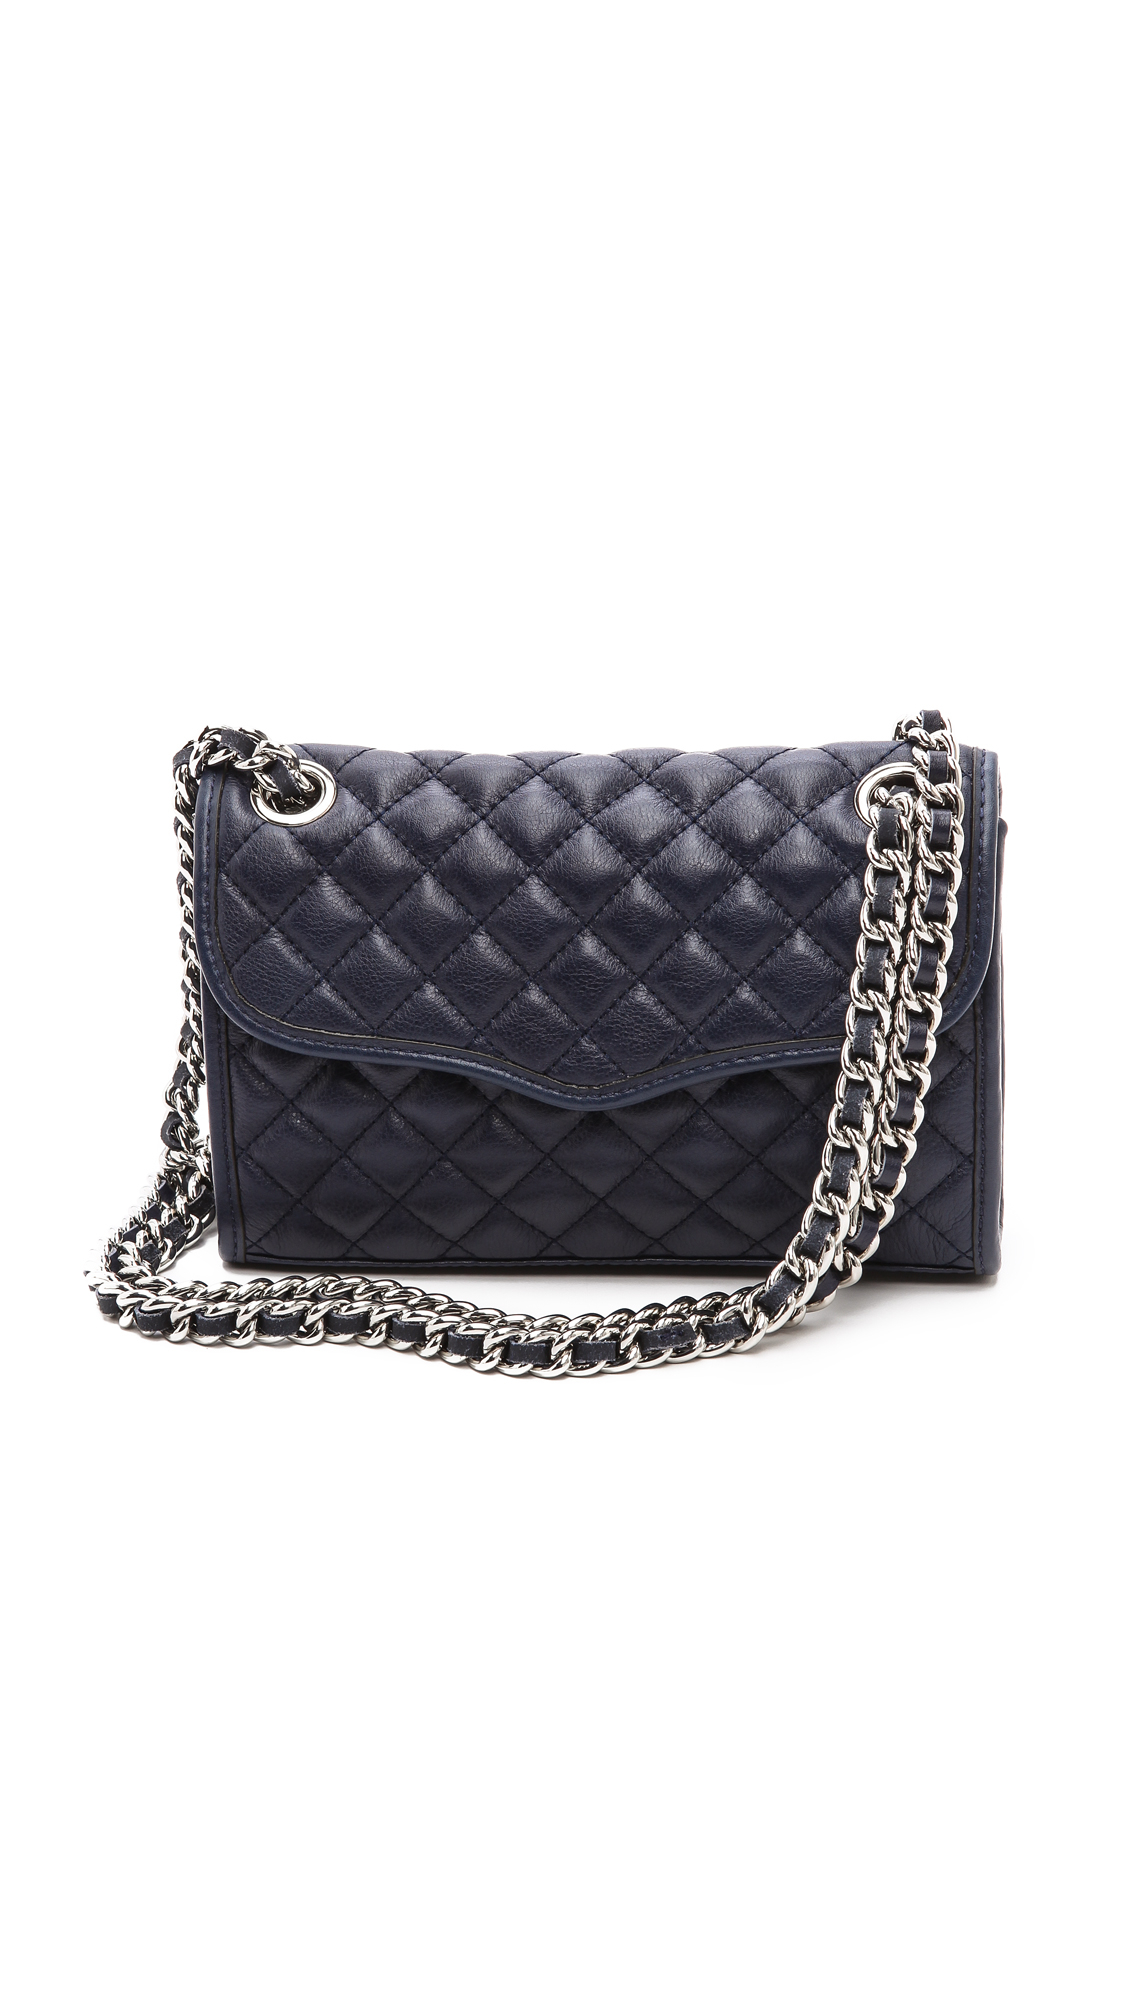 Rebecca Minkoff Quilted Mini Affair Bag In Black Sapphire